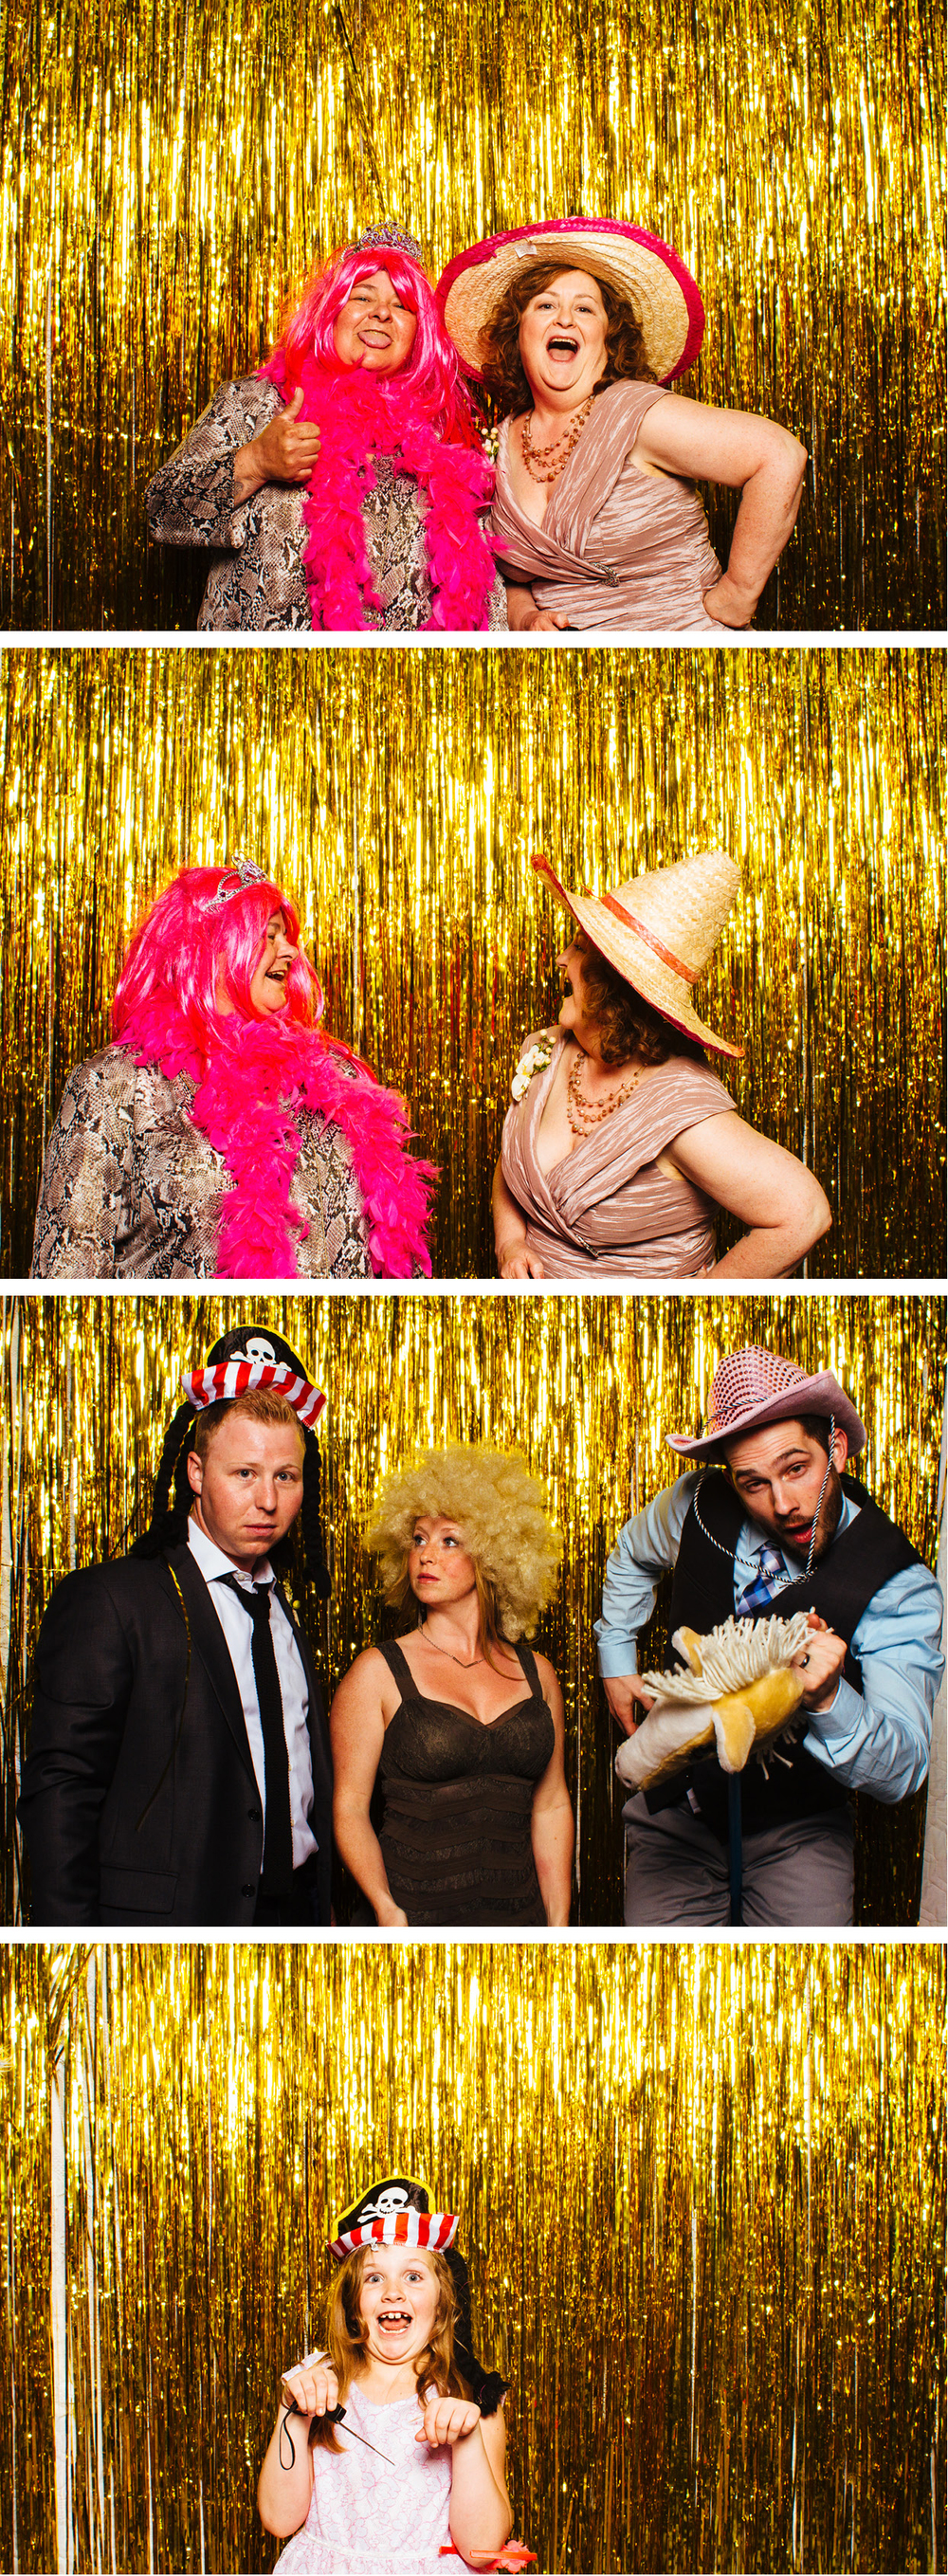 CK-Photo-Nashville-Wedding-Photographer-Photobooth-DL3.jpg